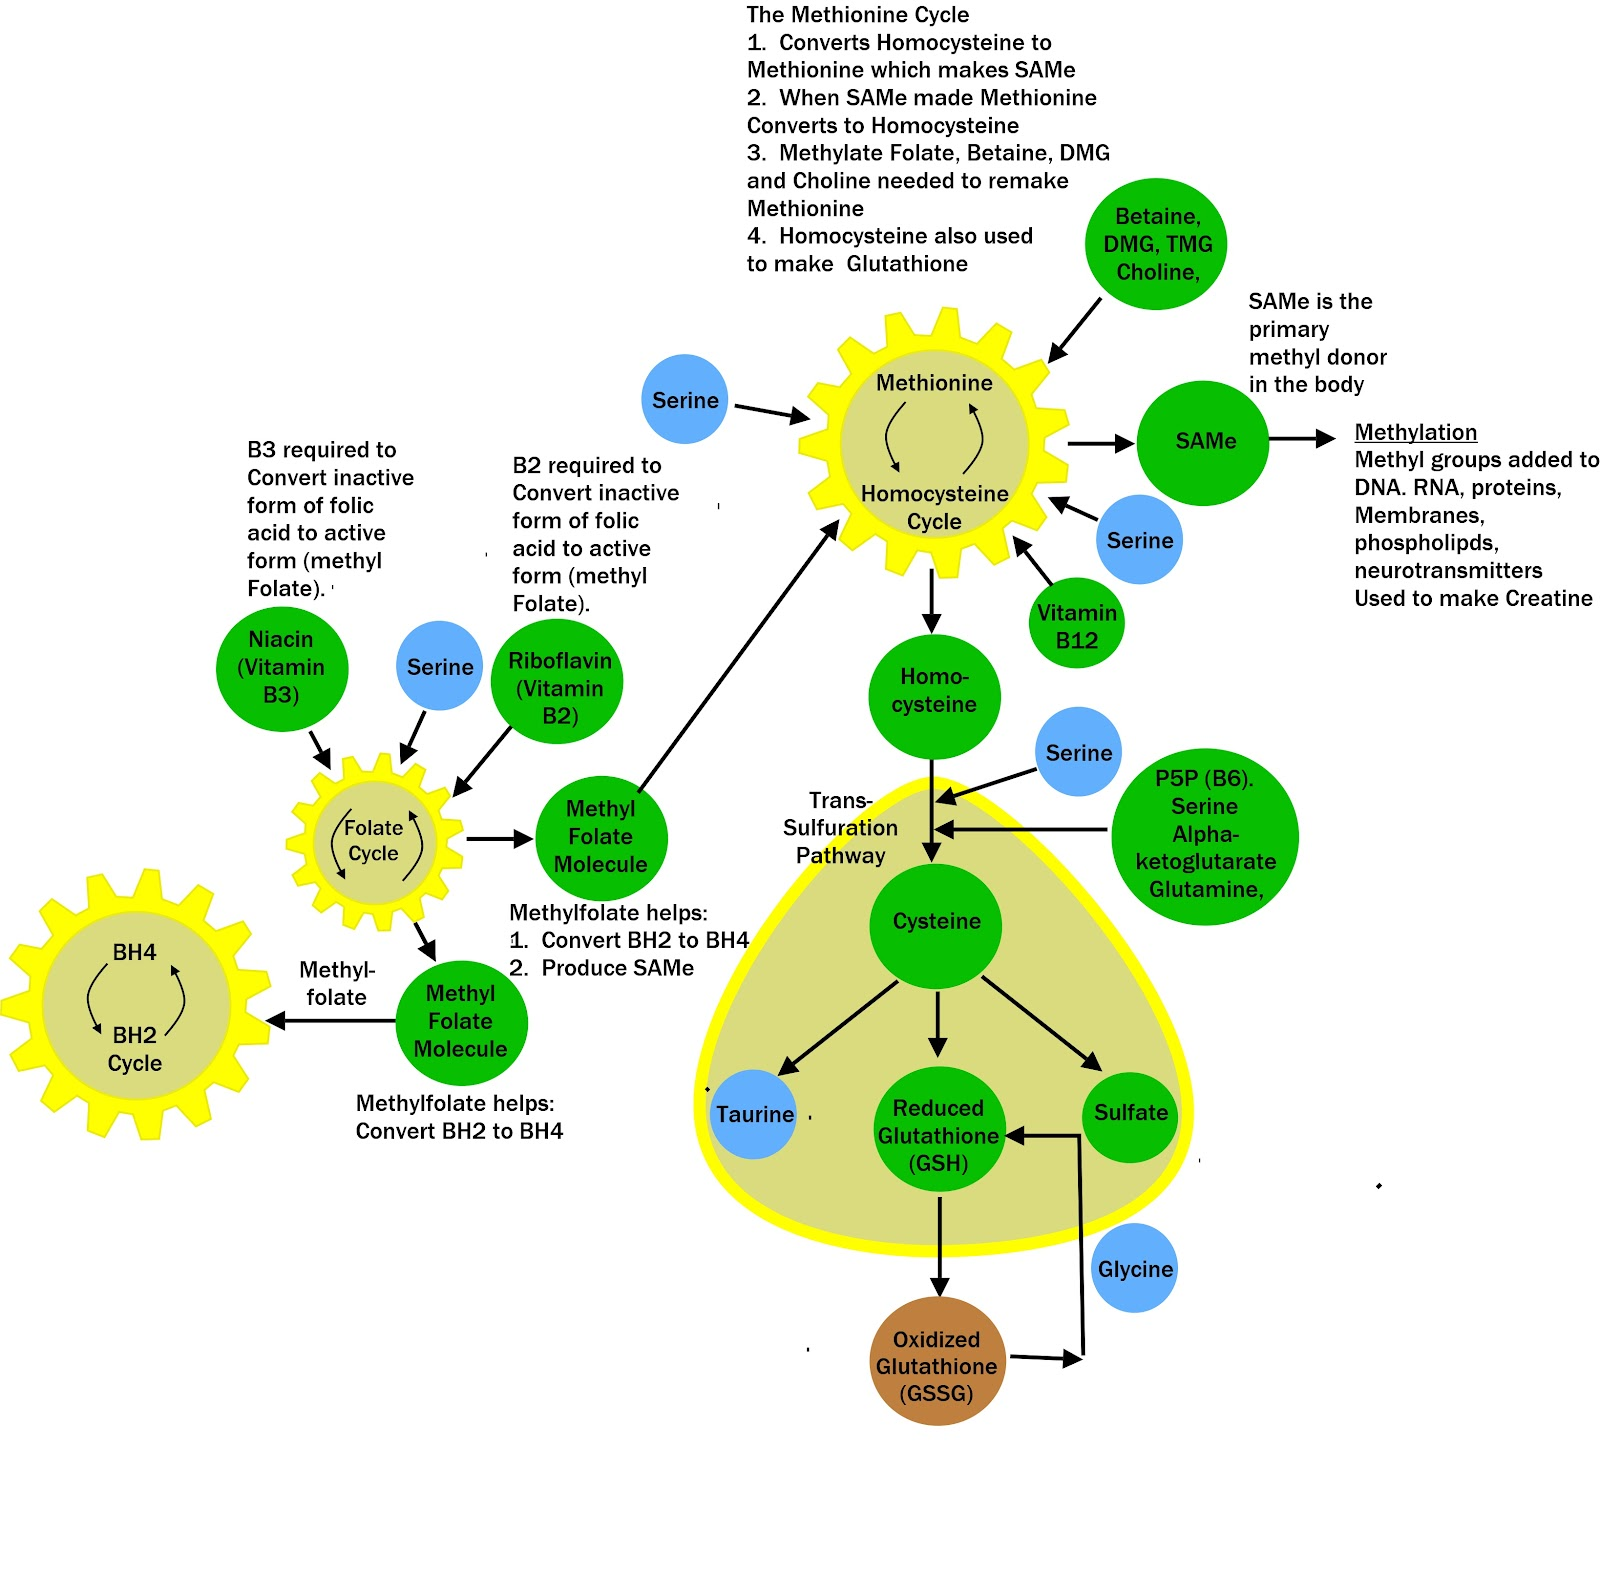 Commonly Disrupted Metabolic Pathways 2 - 2 of 2.jpg